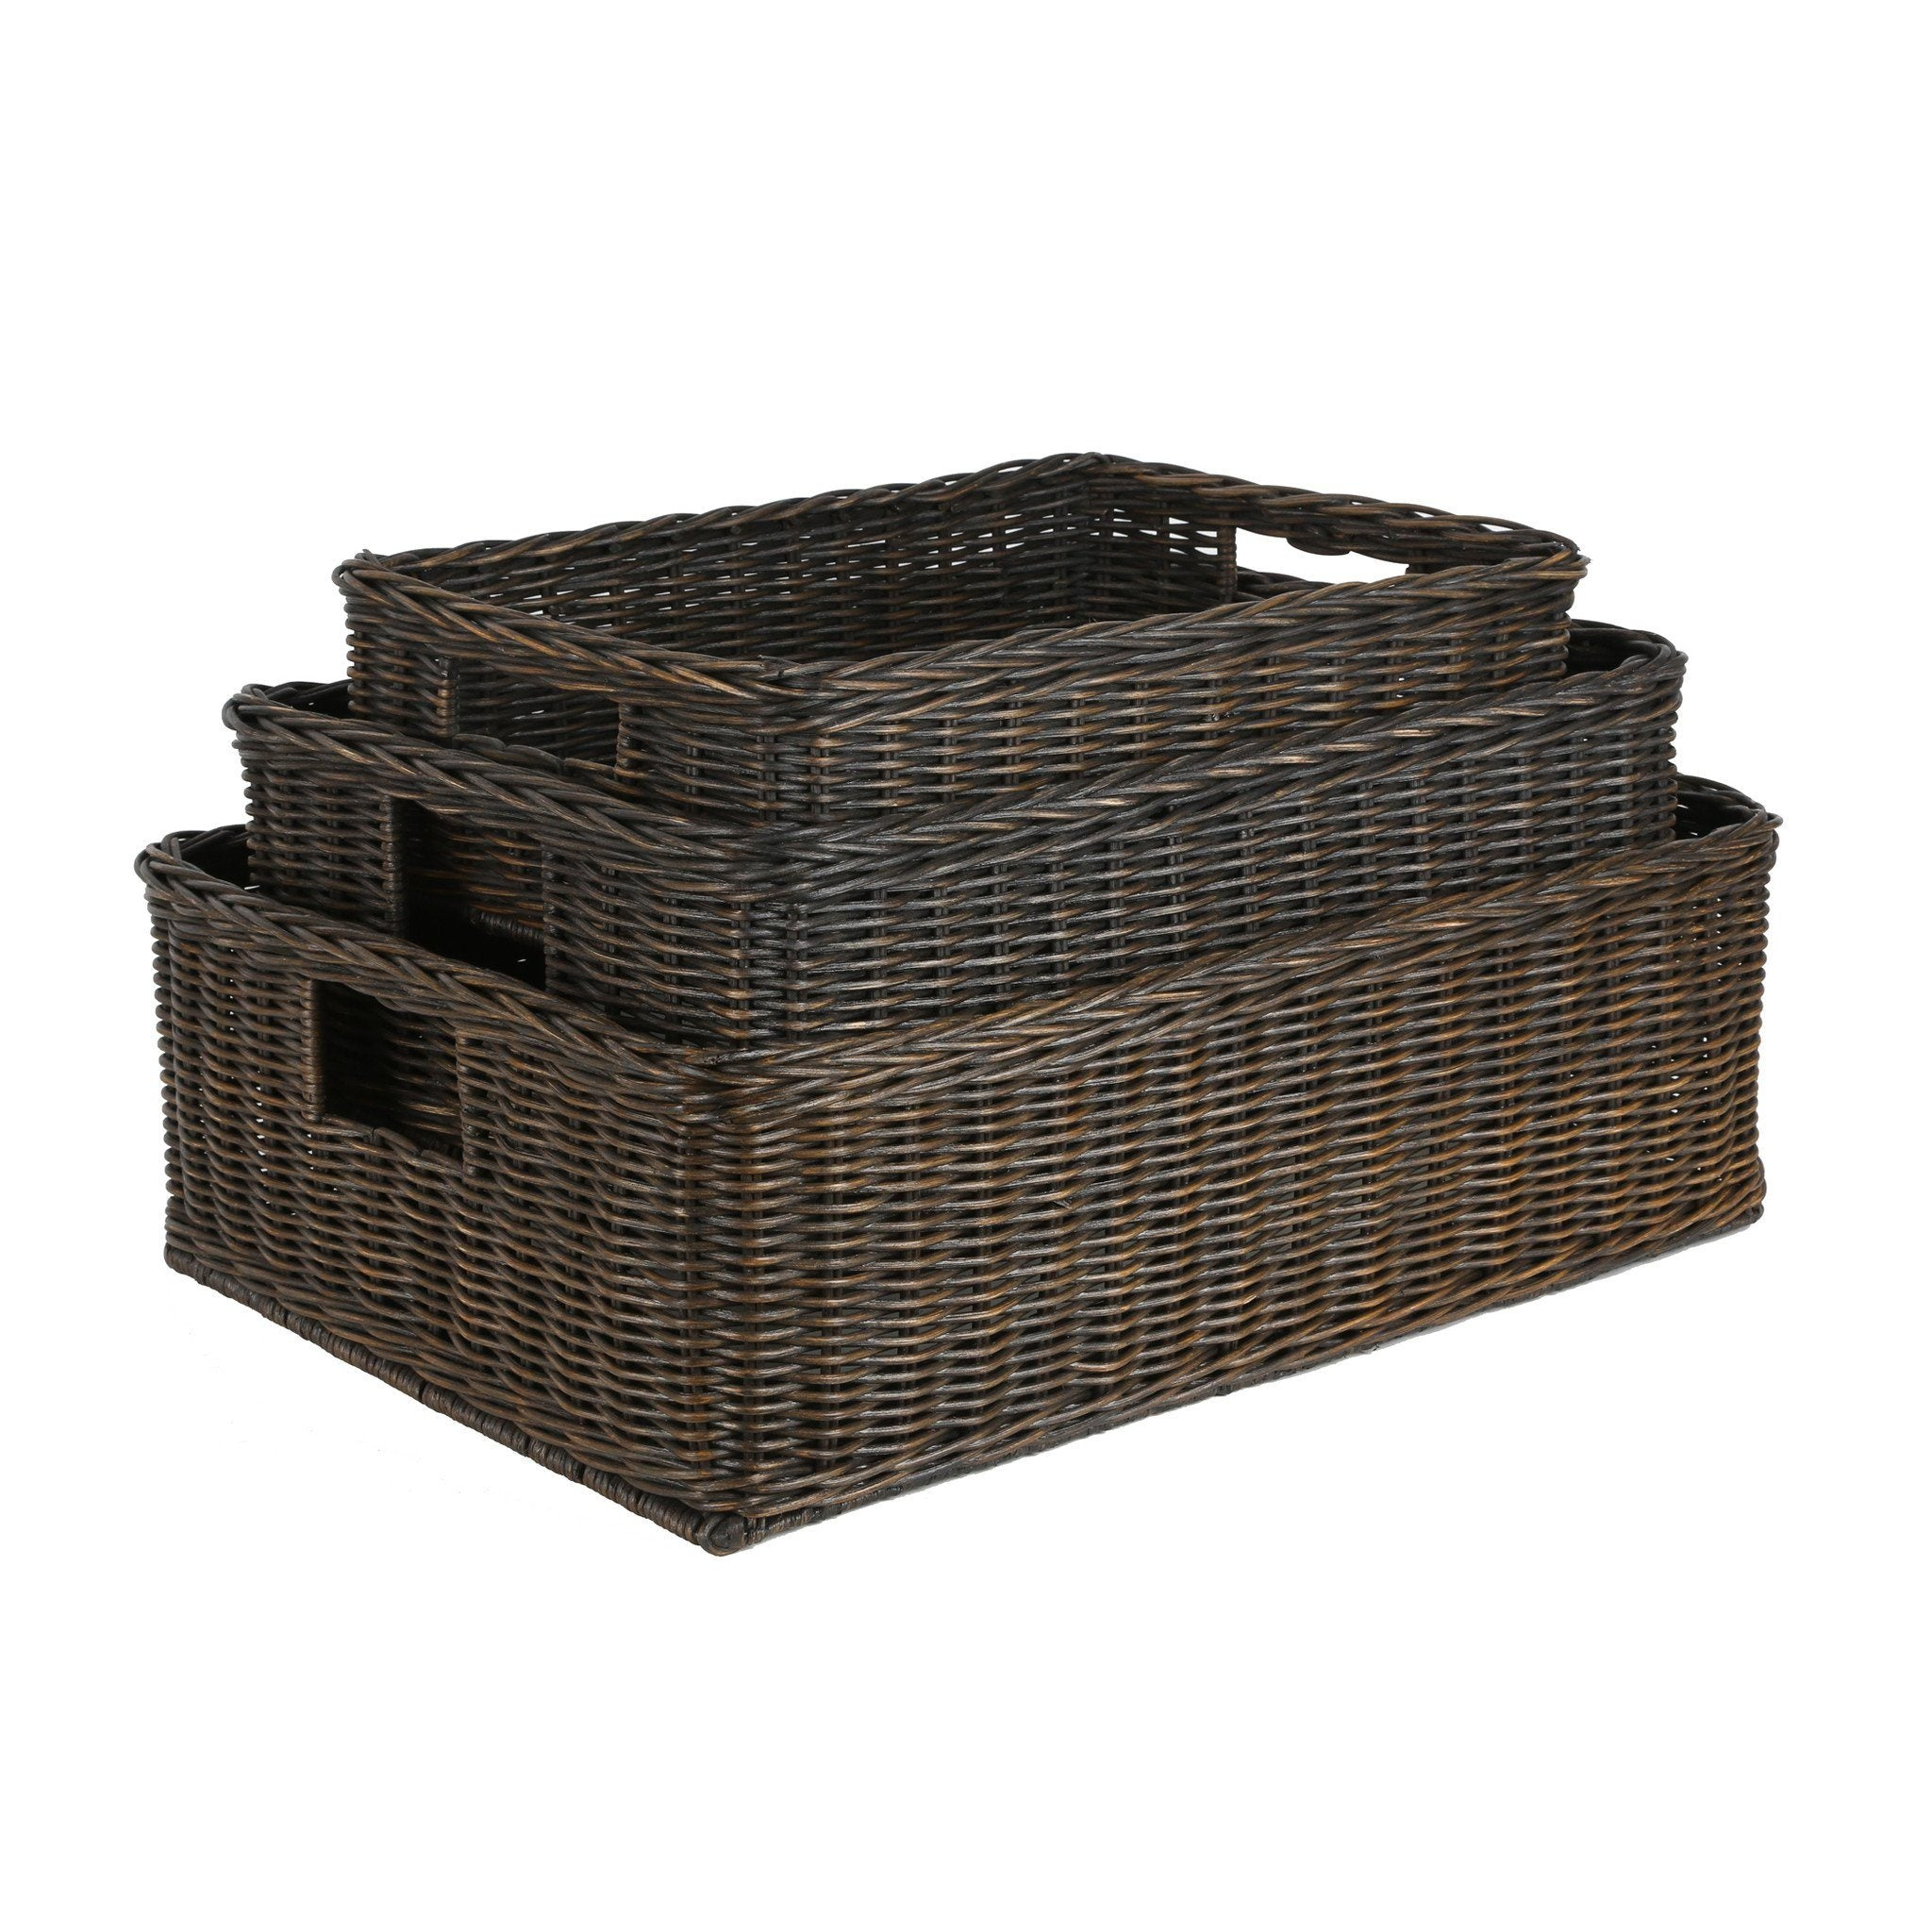 The Basket Lady Underbed Wicker Storage Basket In Antique Walnut Brown 3  Sizes Shown From The ...